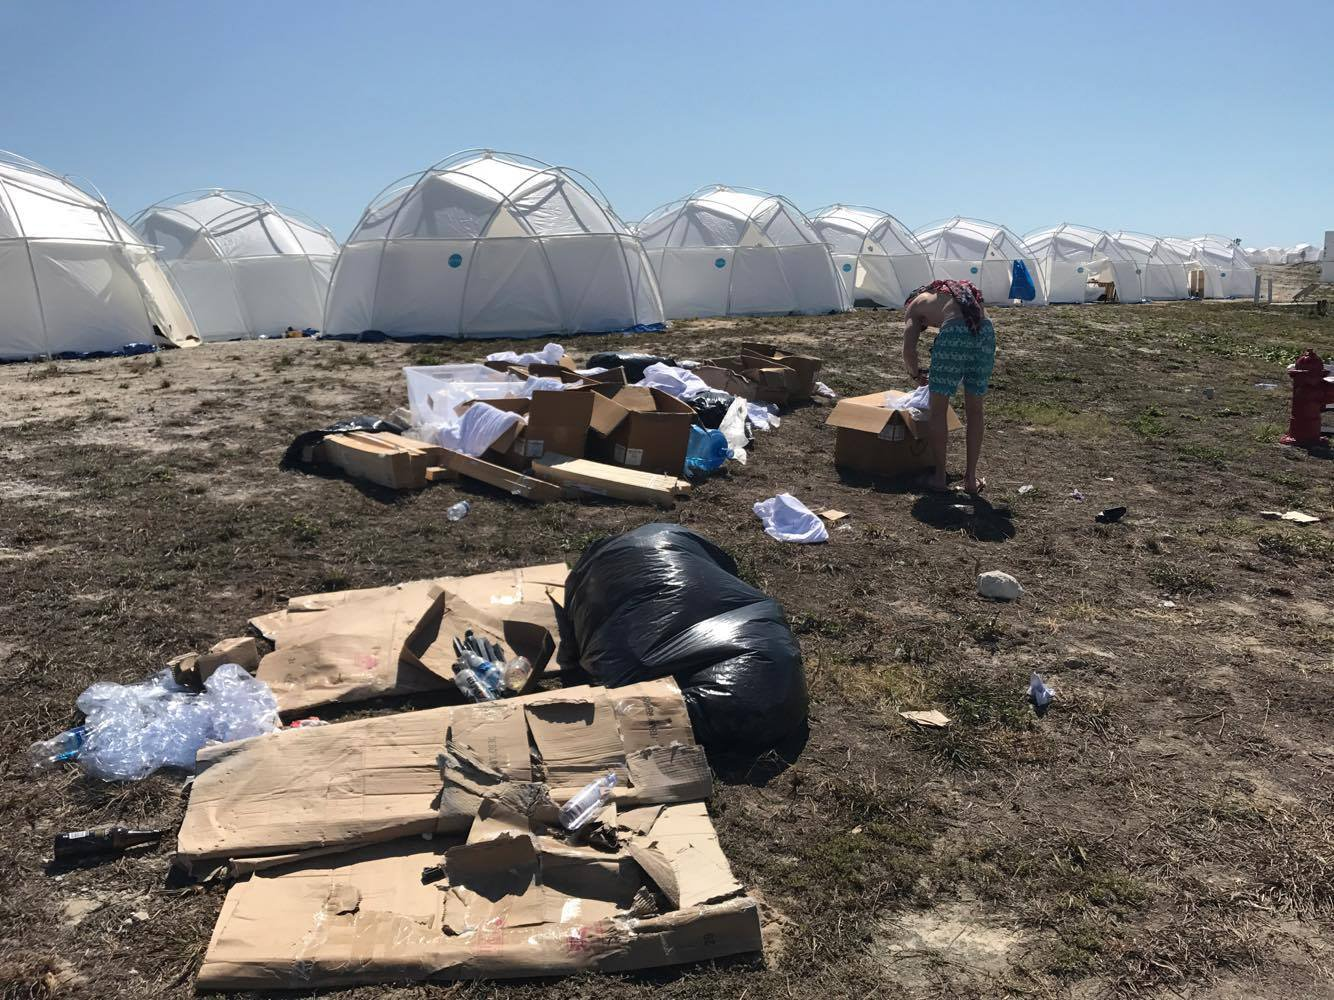 I went to Fyre Festival and documented everything